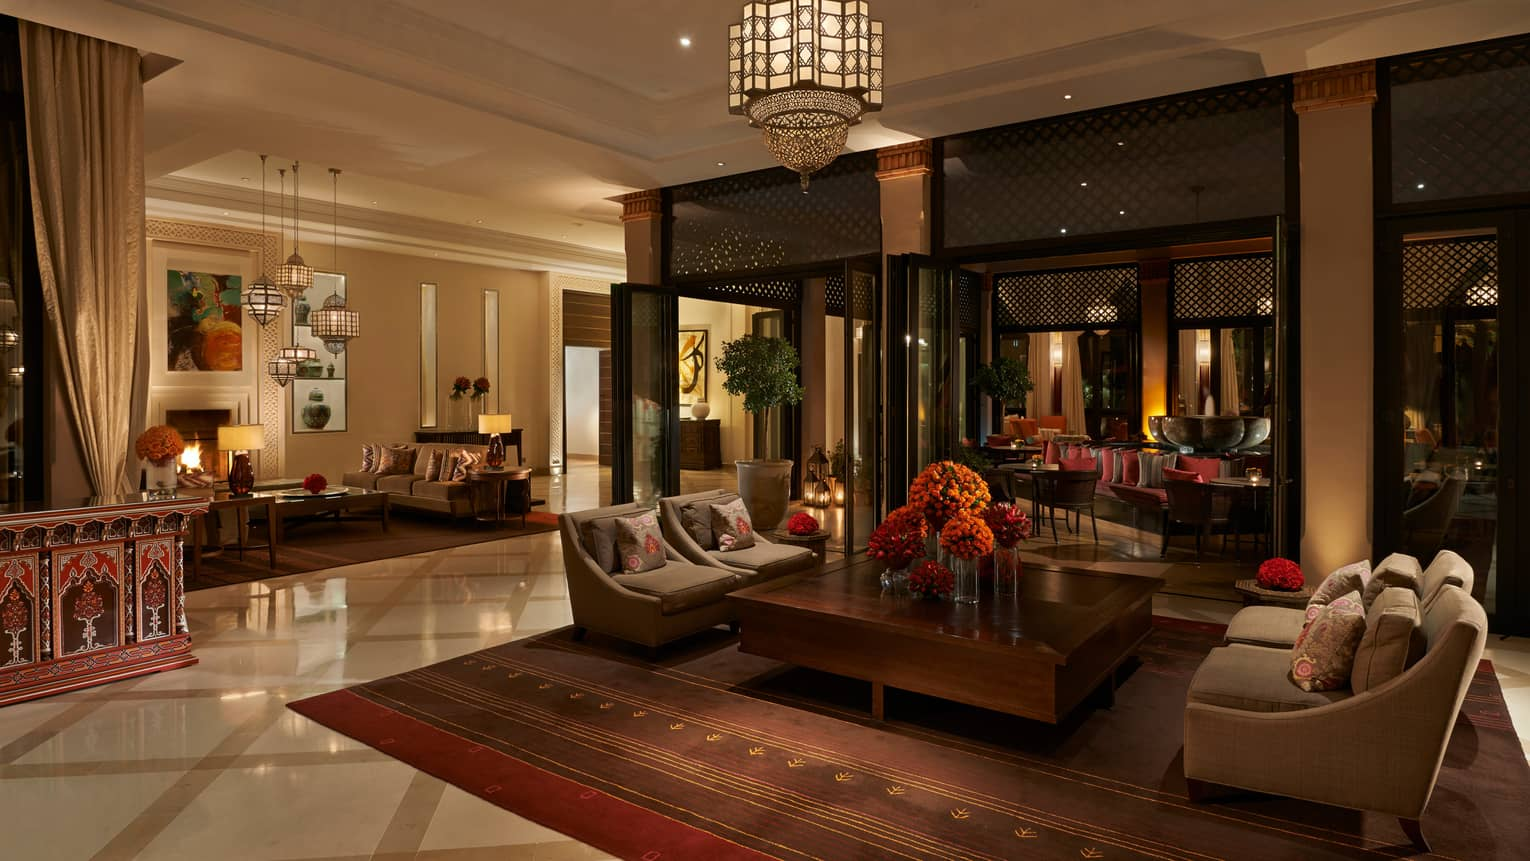 Dimly-lit hotel lobby with marble floors, seating area, rug under large Moroccan chandeliers